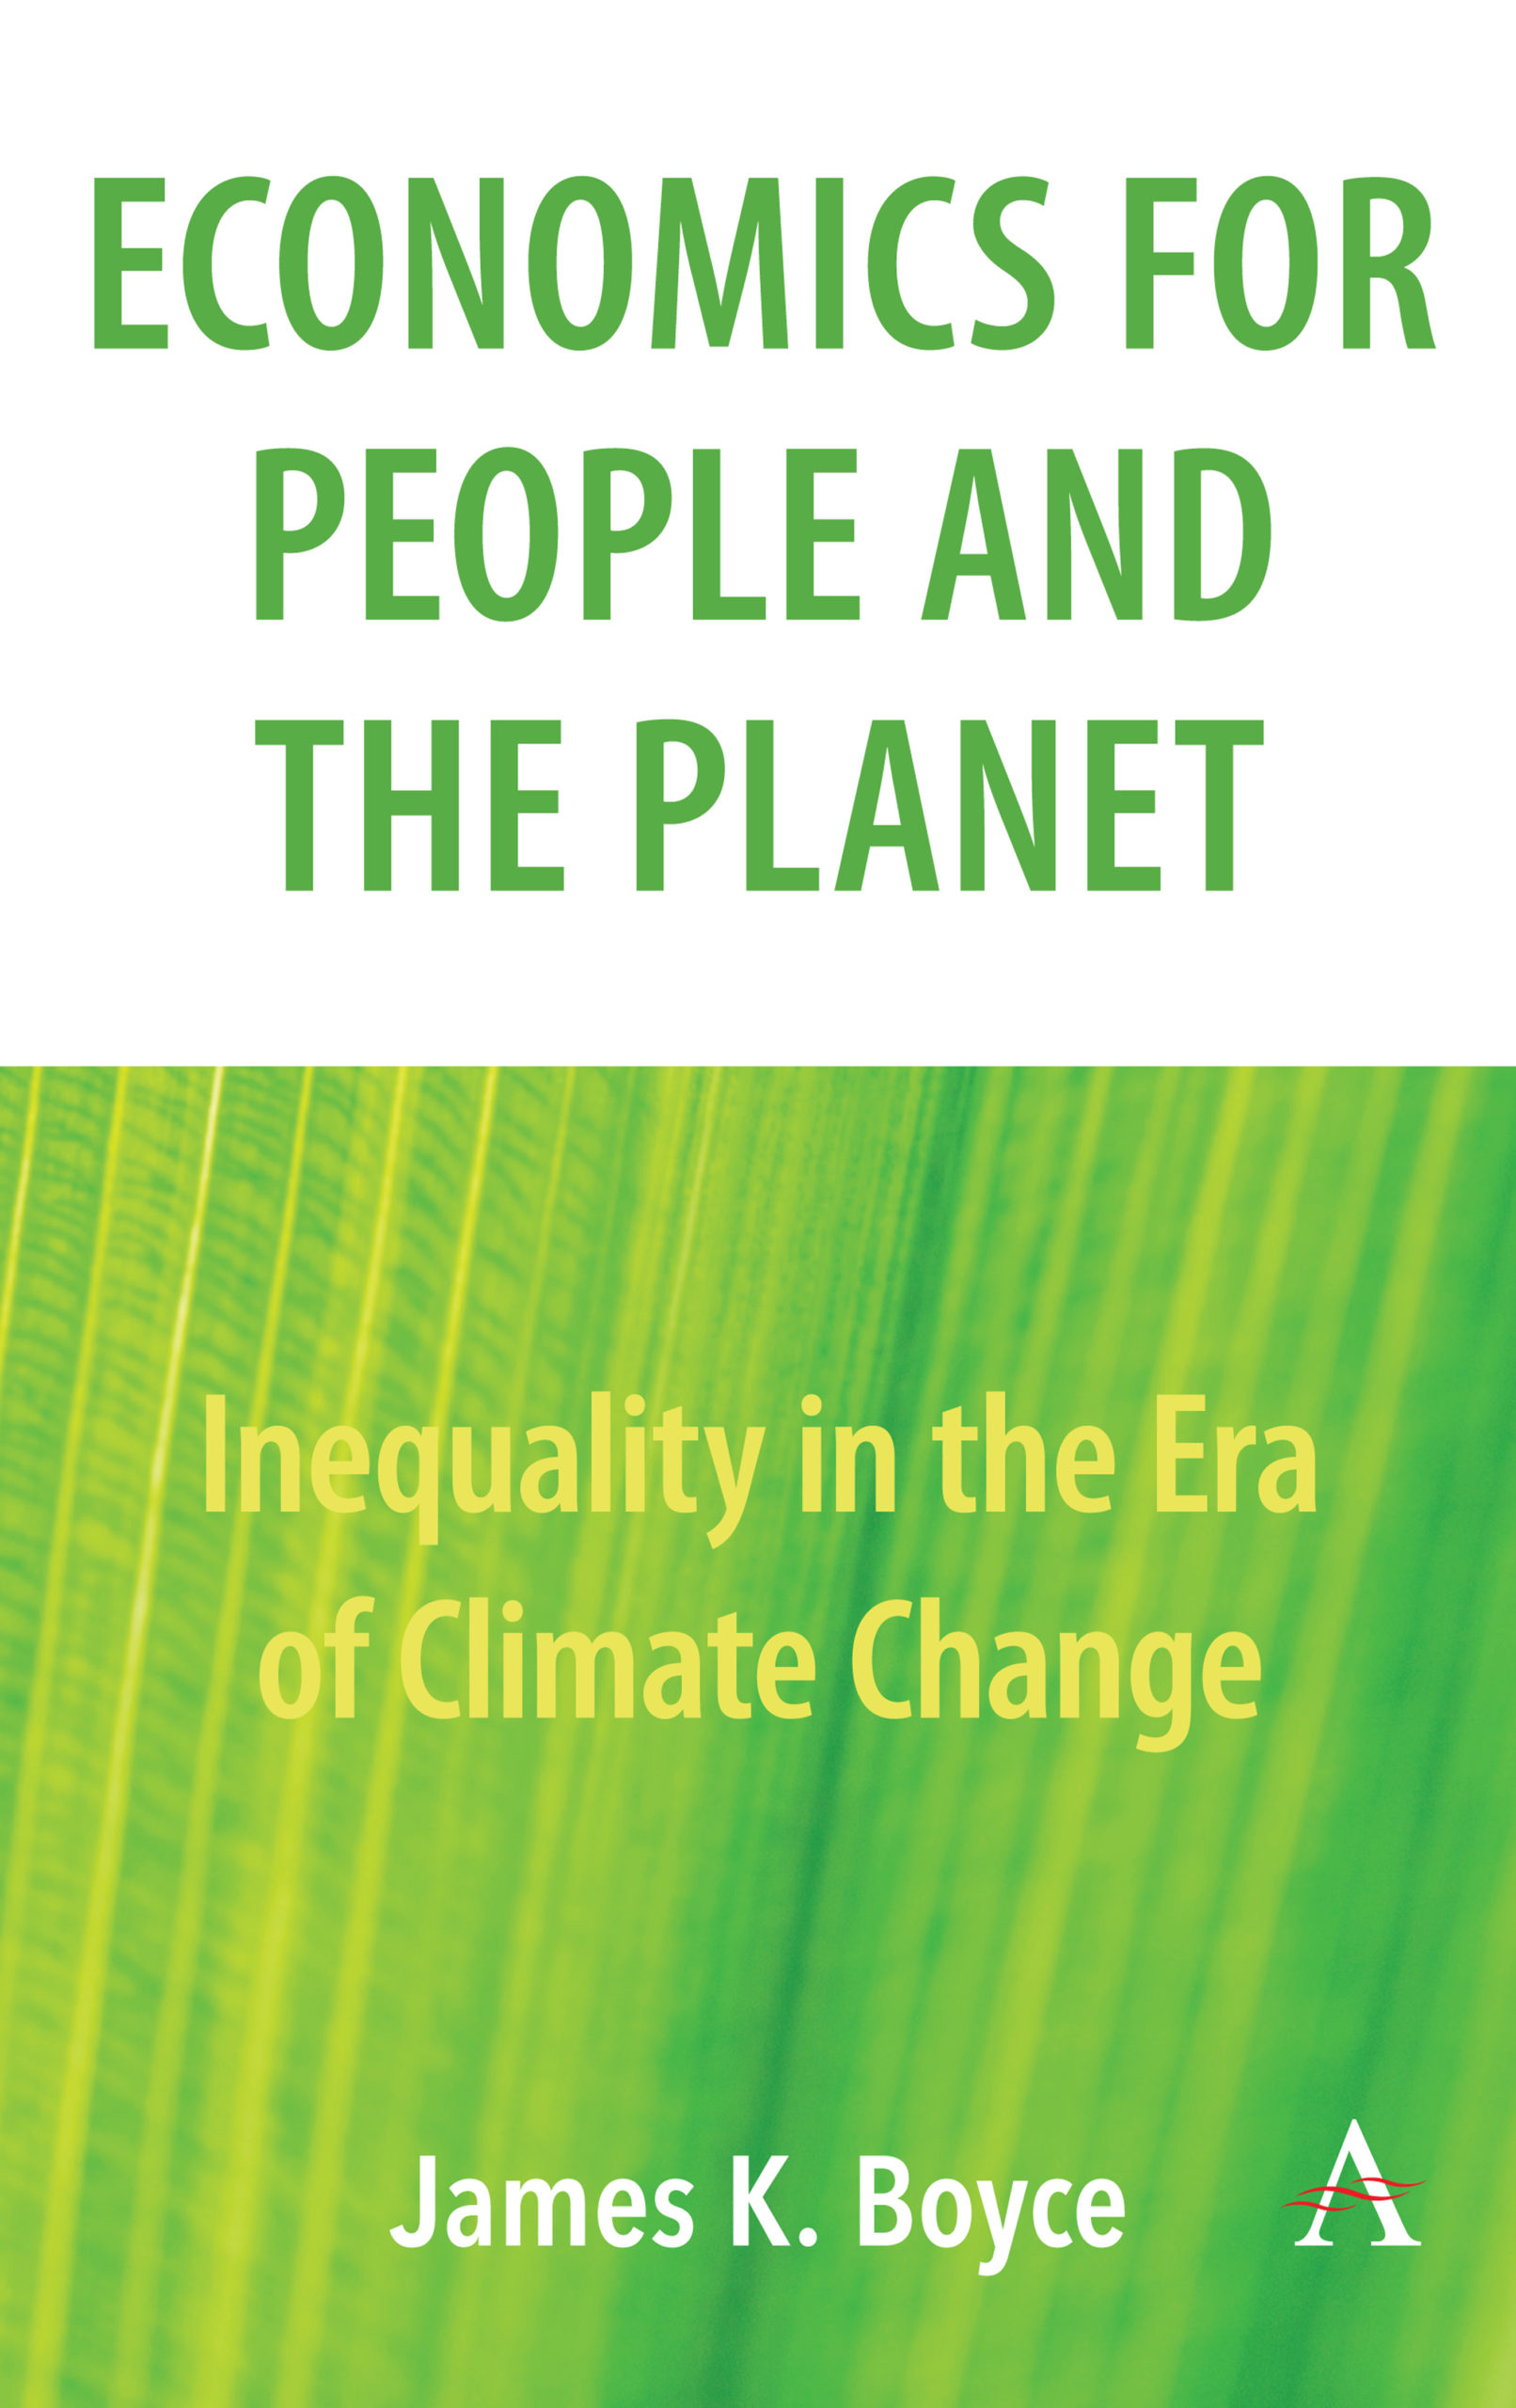 Economics for People and the Planet